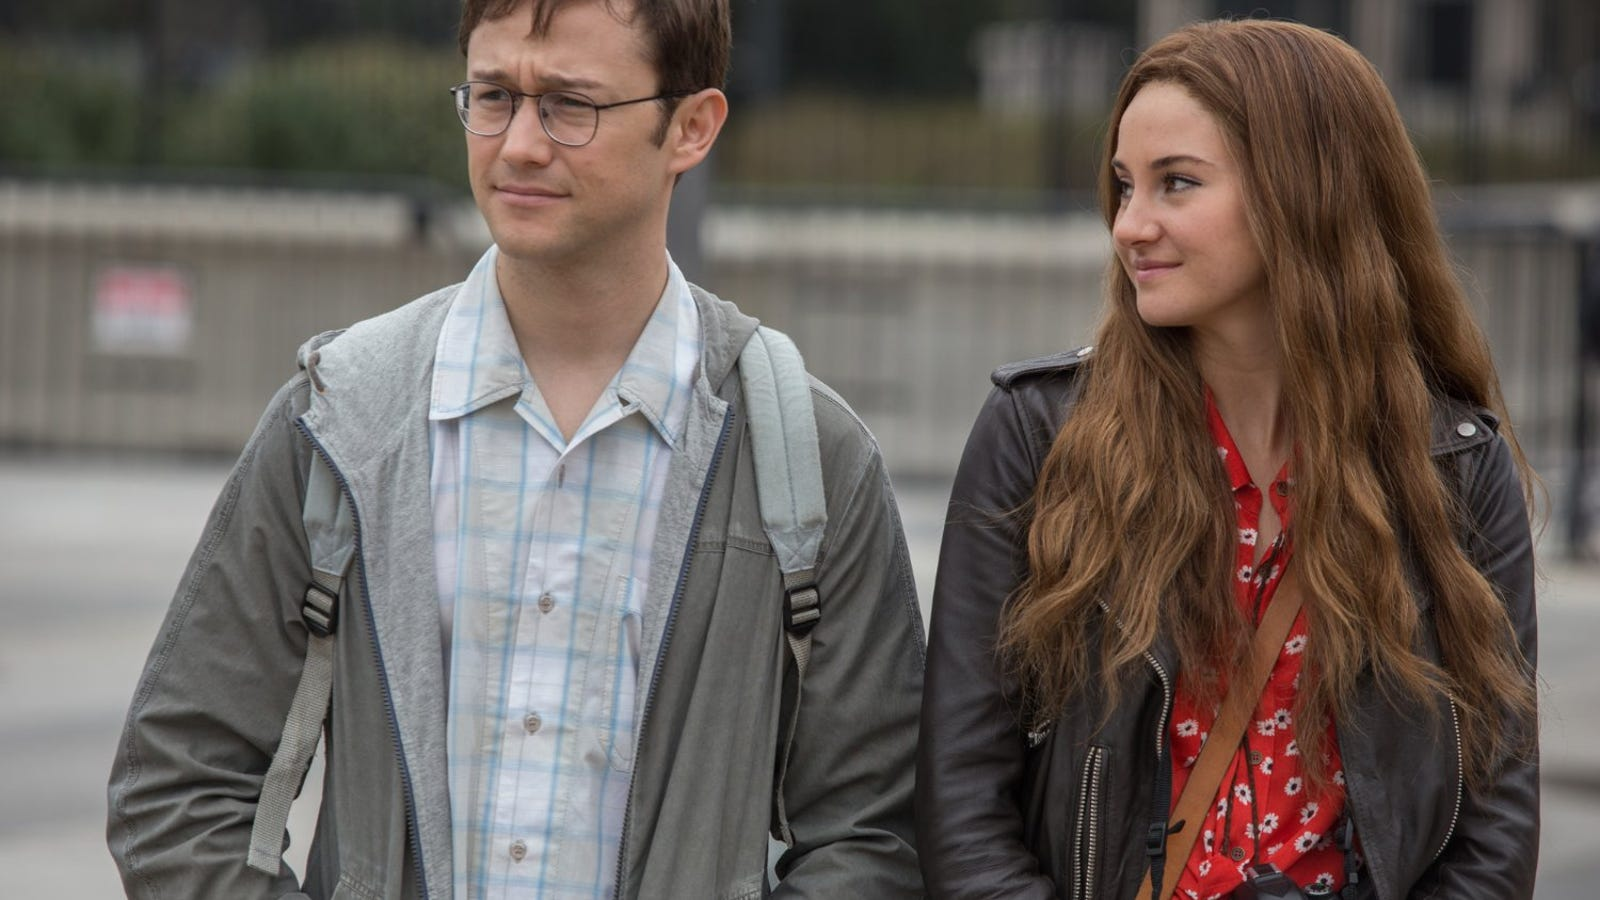 The Snowden Review: Too Much Humping, Not Enough Hacking